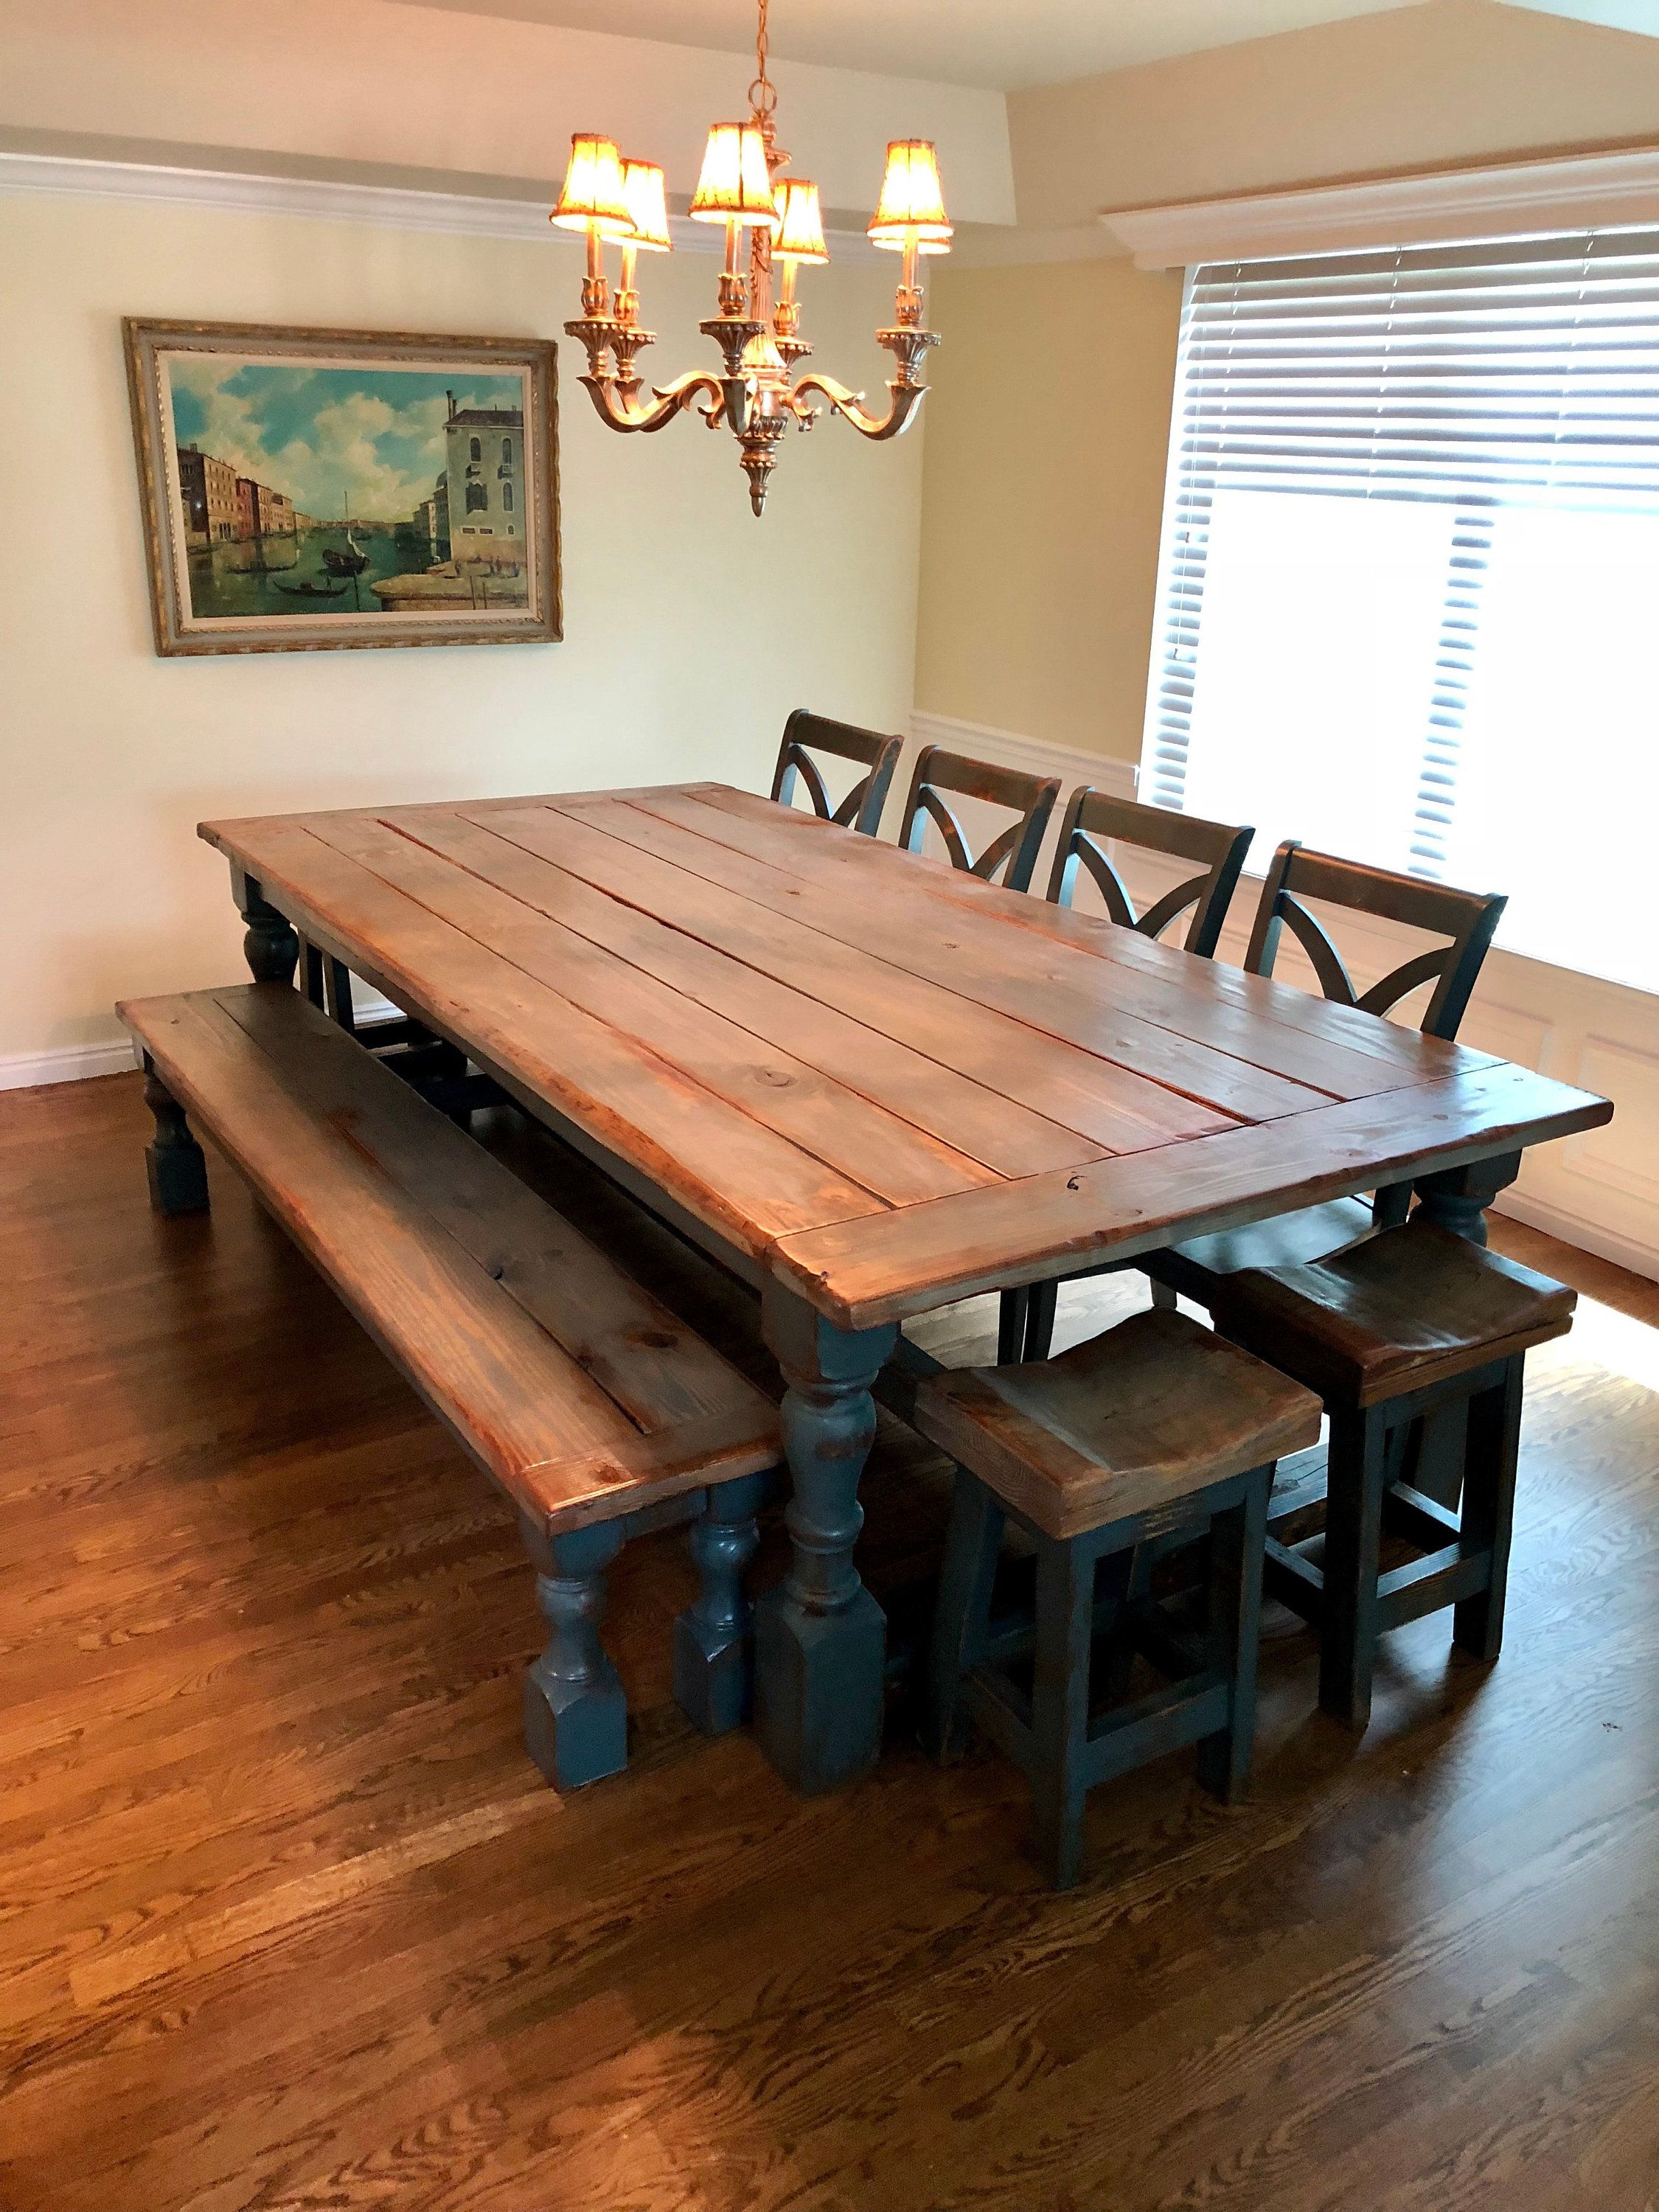 Rustic New England Farmhouse Table Bench 4 Stools 4 Chairs Etsy In 2020 Farmhouse Dining Room Table Farmhouse Table With Bench Farmhouse Dining Table